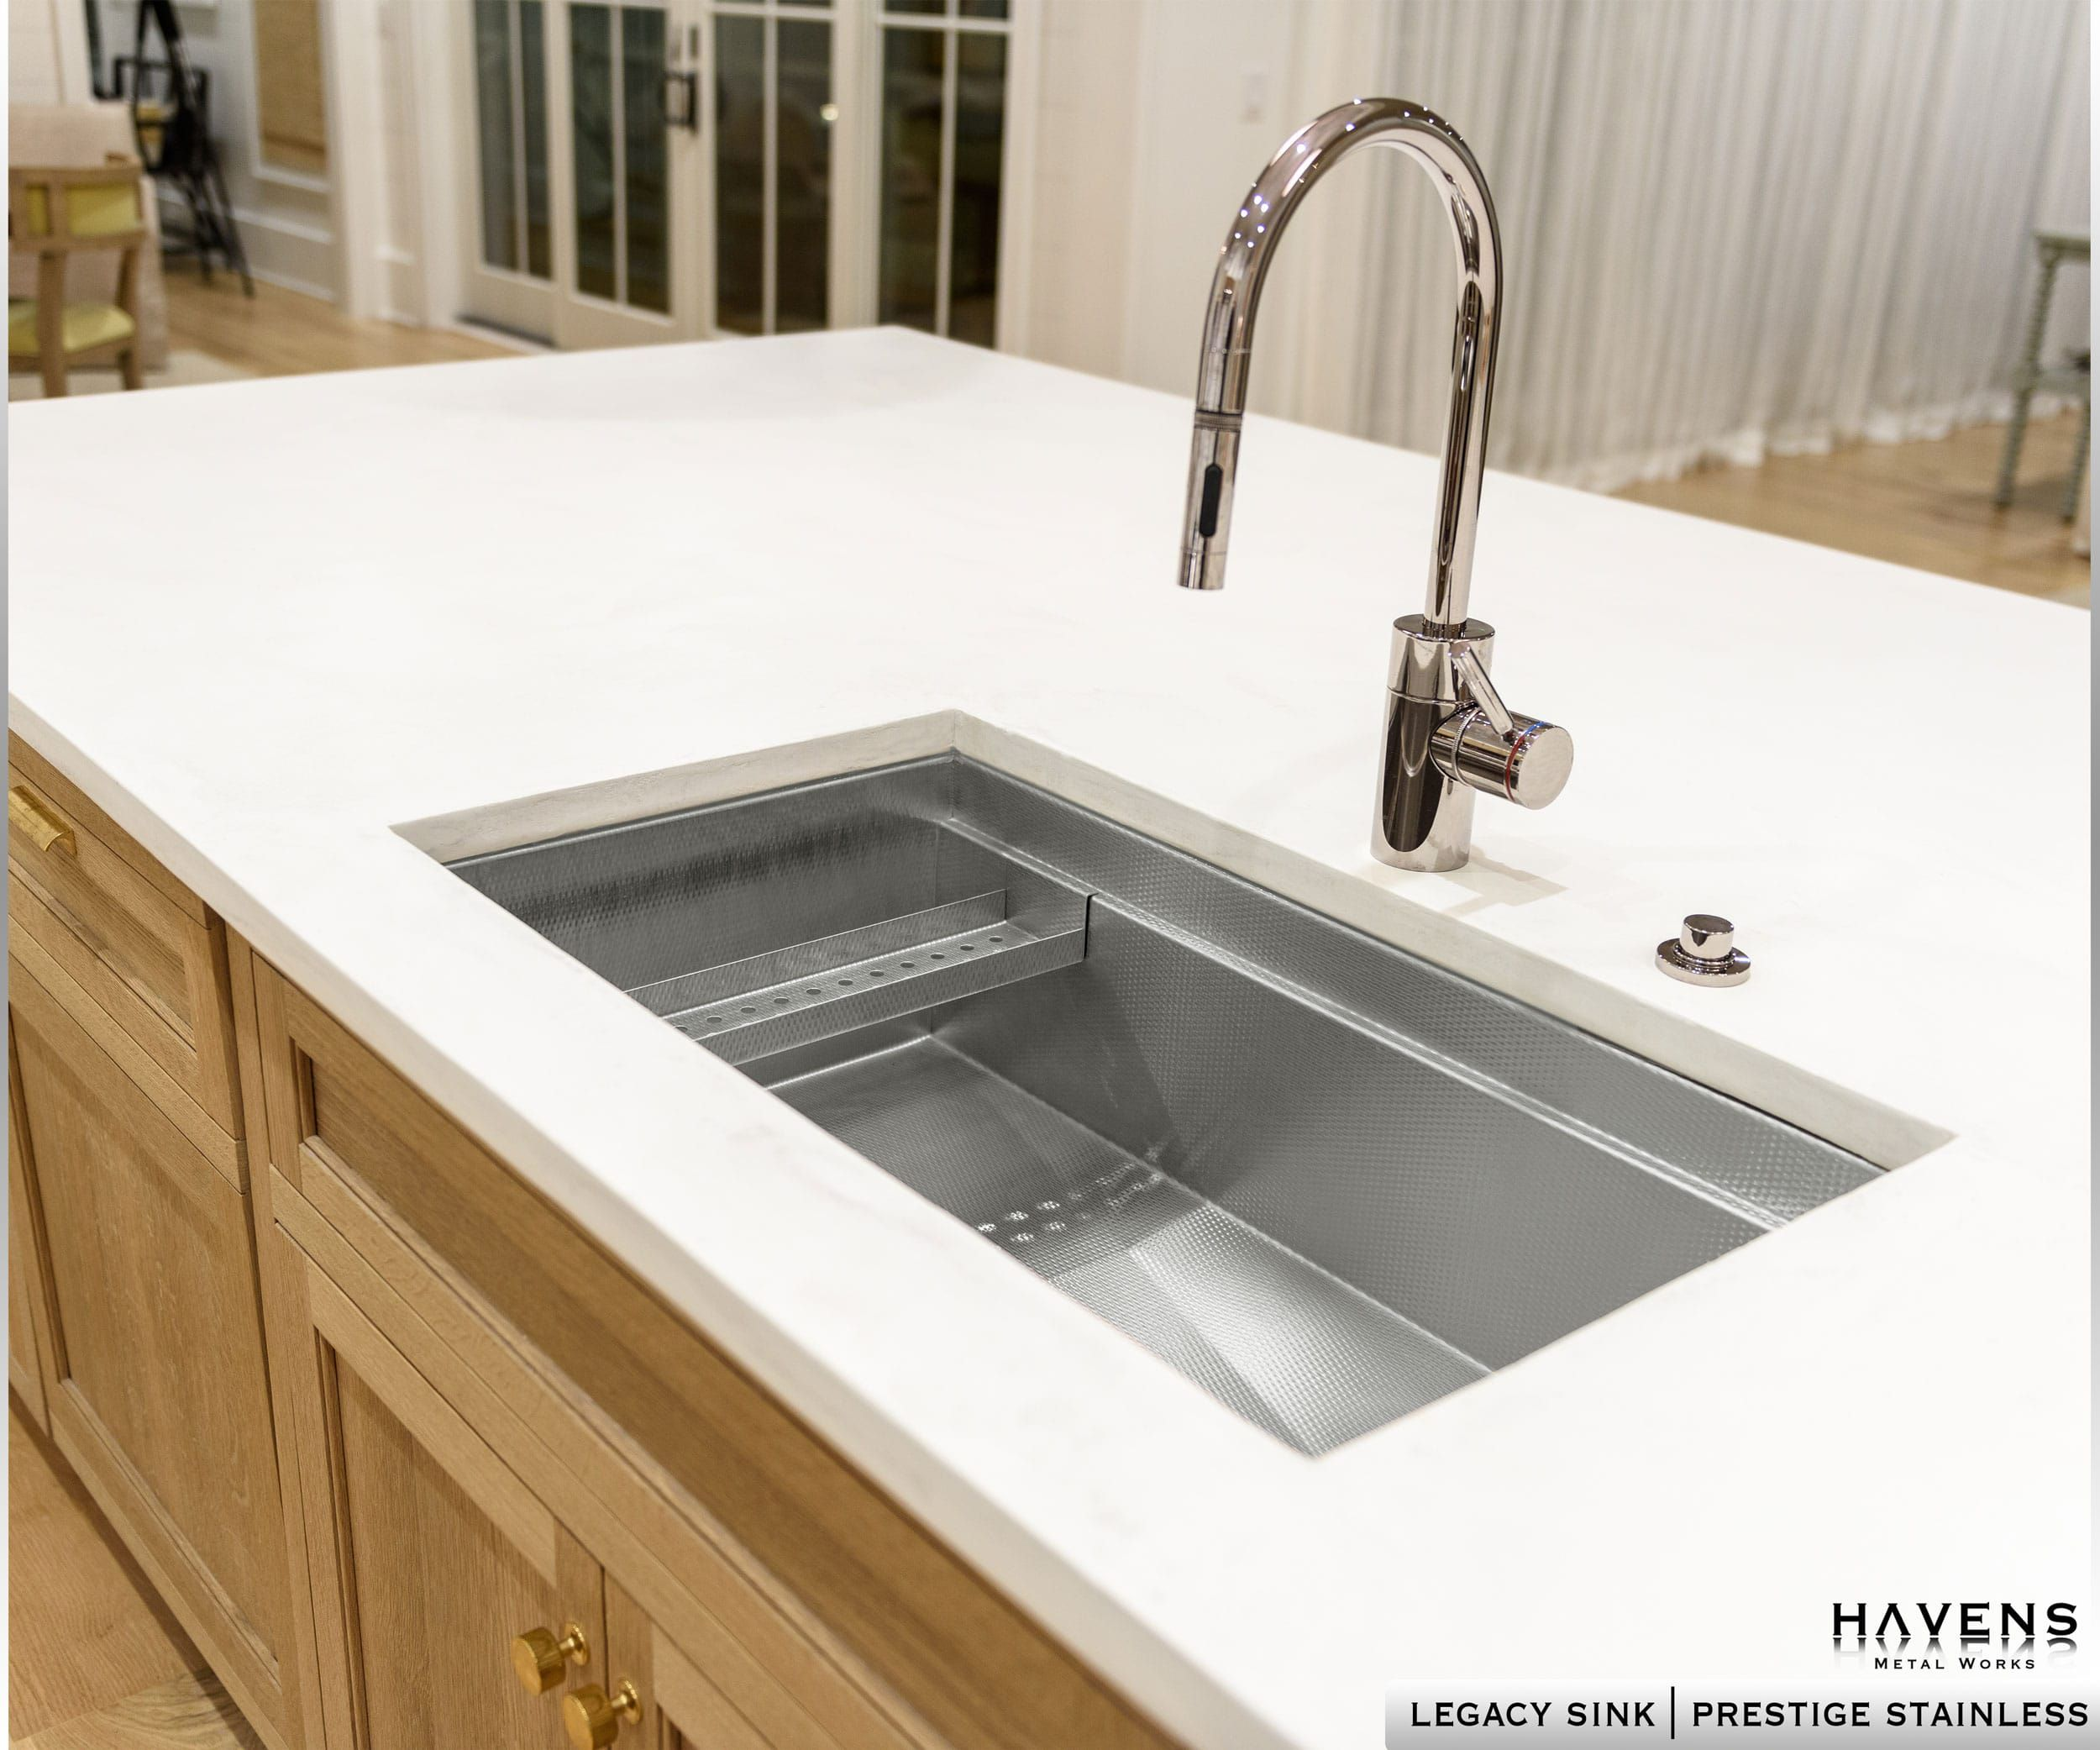 Waterstone Plp 9350 Faucet Paired With A Havens Luxury Metals